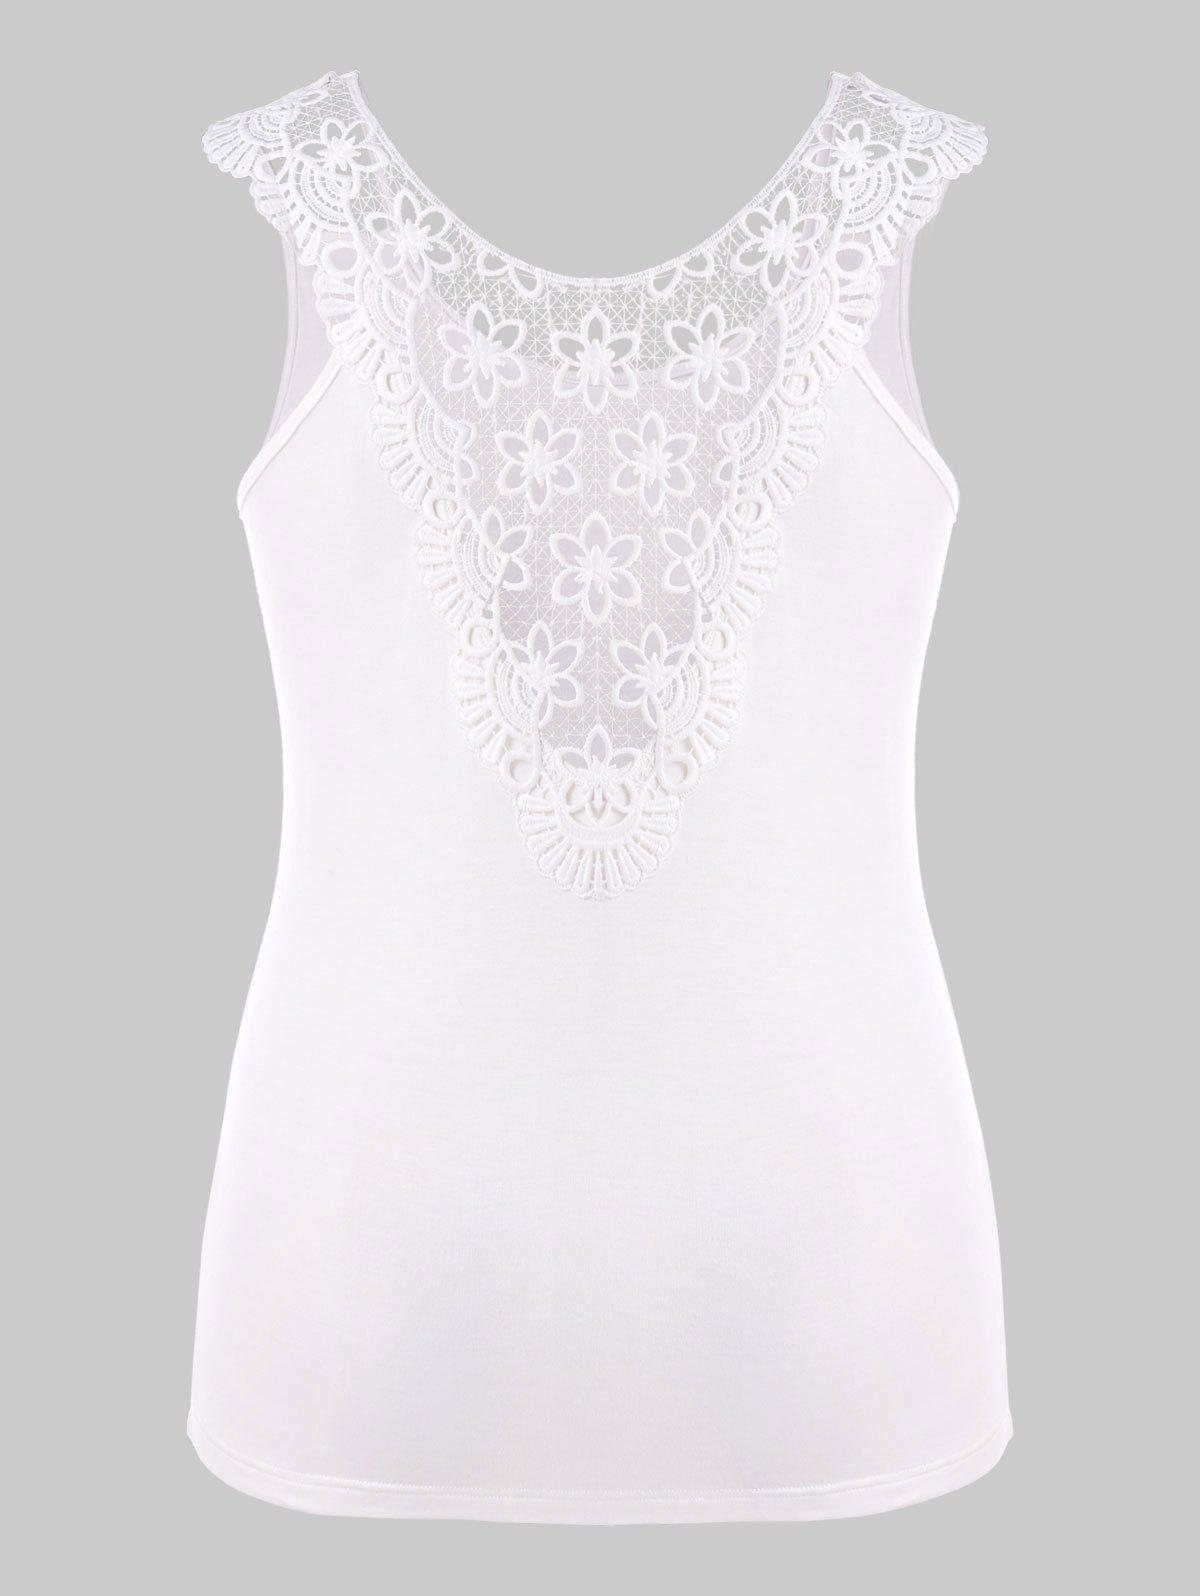 Store Plus Size Cutwork Lace T-shirt